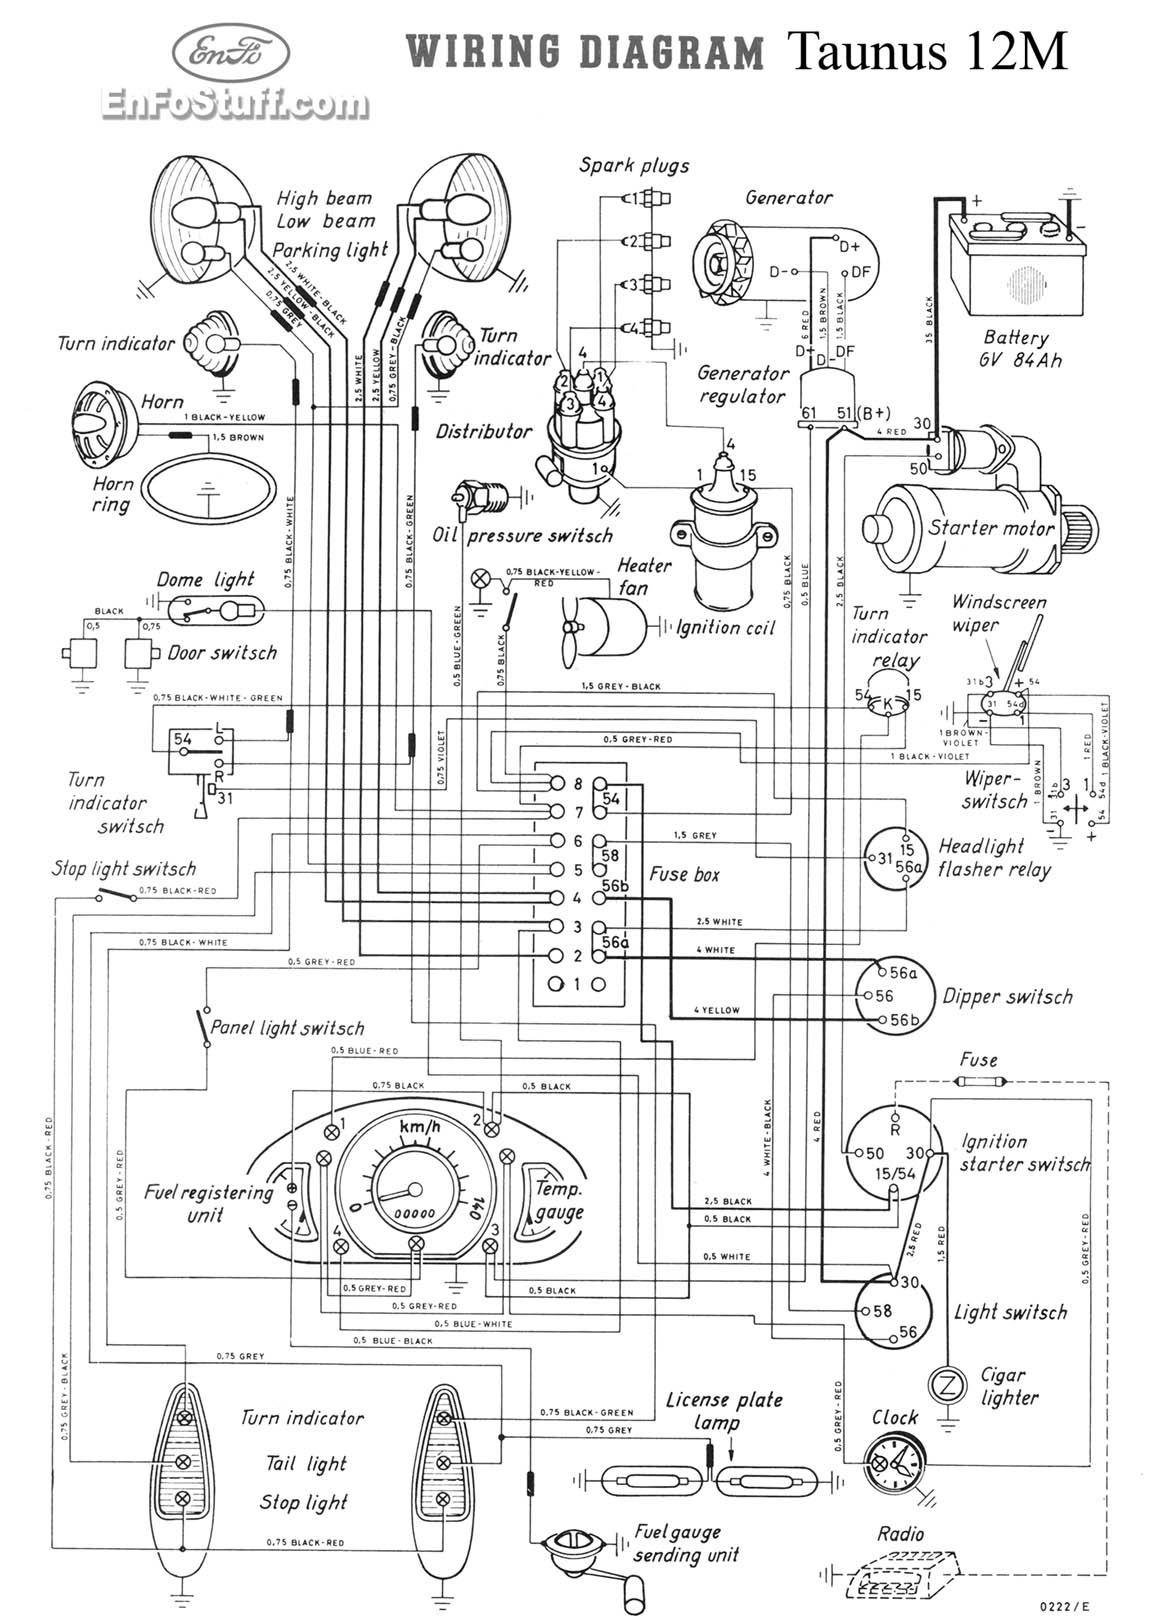 1949 cadillac wiring diagram wiring diagram and engine diagram 1940 Buick Special Wiring Diagram Schematic download 1952 1959 ford taunus 12m on 1949 cadillac wiring diagram Buick Wiring Schematics Online